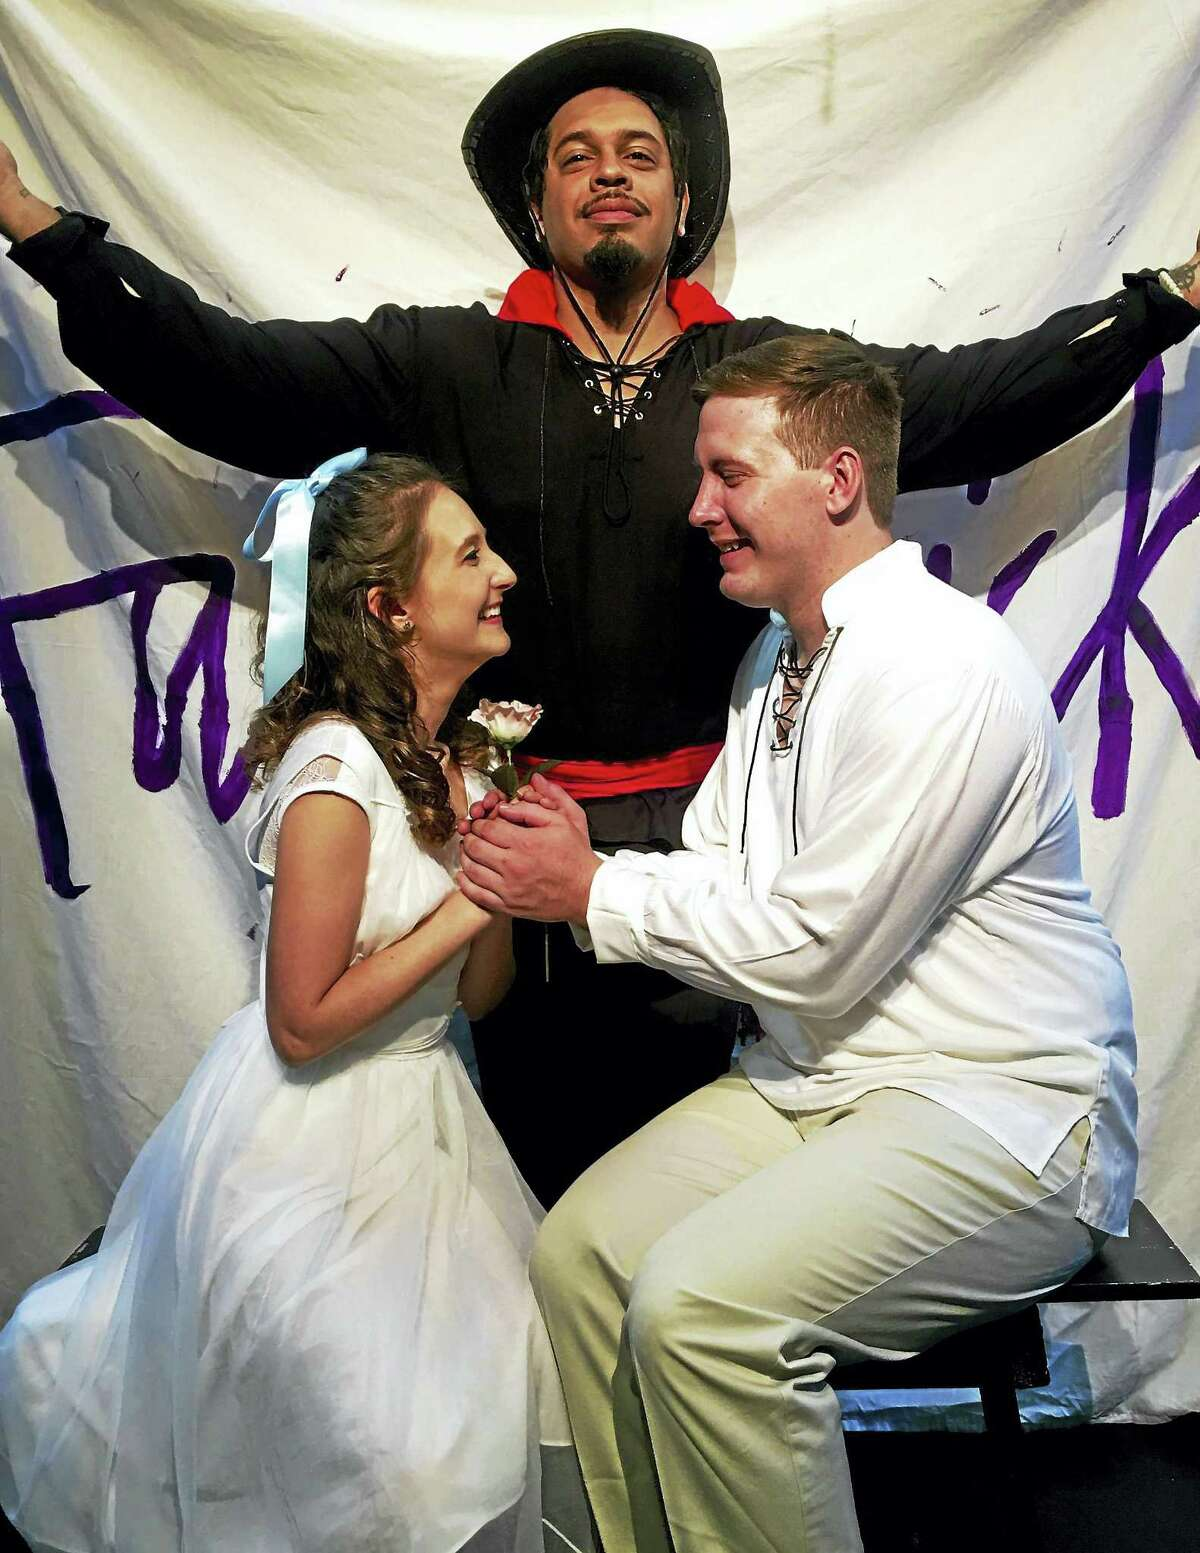 Photo courtesy of Connecticut Cabaret TheatreJillian Caillouette and Jordan Duvall, seated, and Jon Escobar, standing, star in the Connecticut Cabaret Theater's production of The Fantasticks, opening Aug. 19.